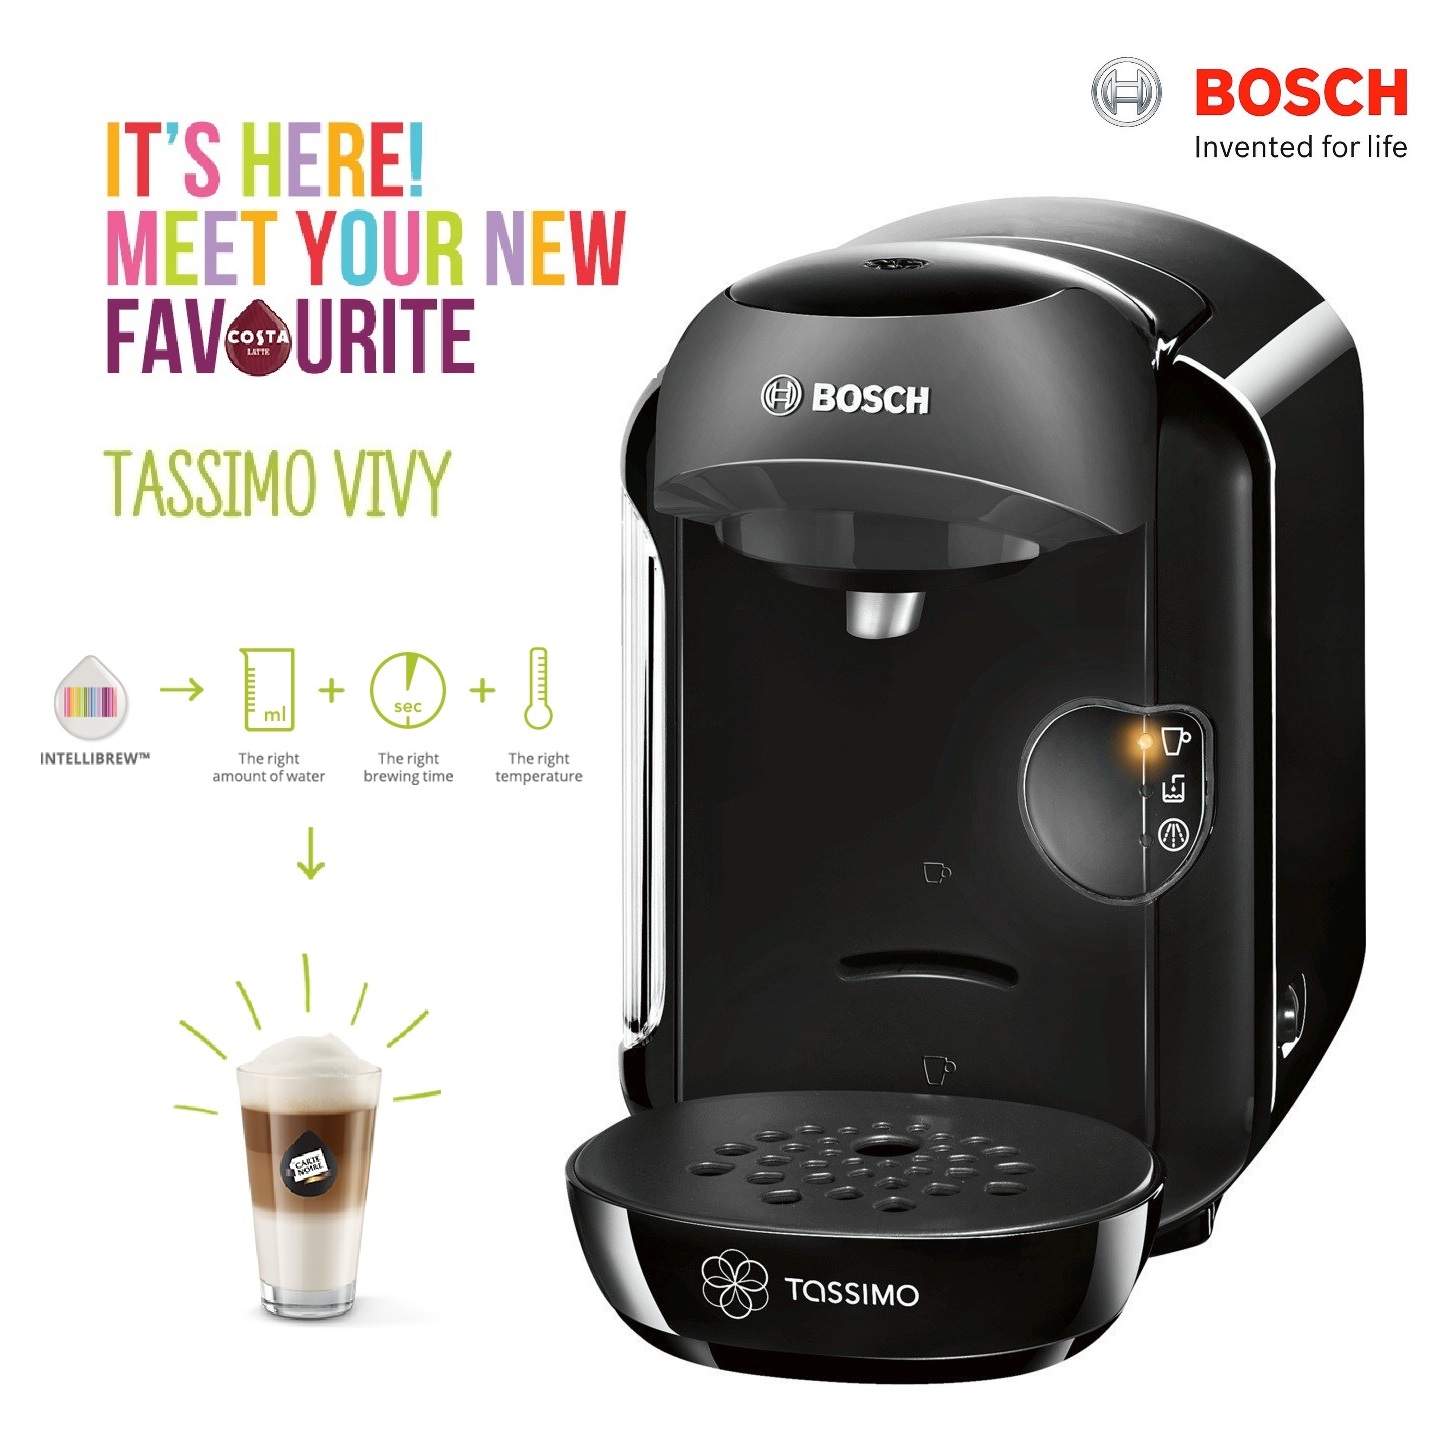 Bosch Tassimo Vivy Ii T12 Multi Hot Amp Cold Dinks Machine